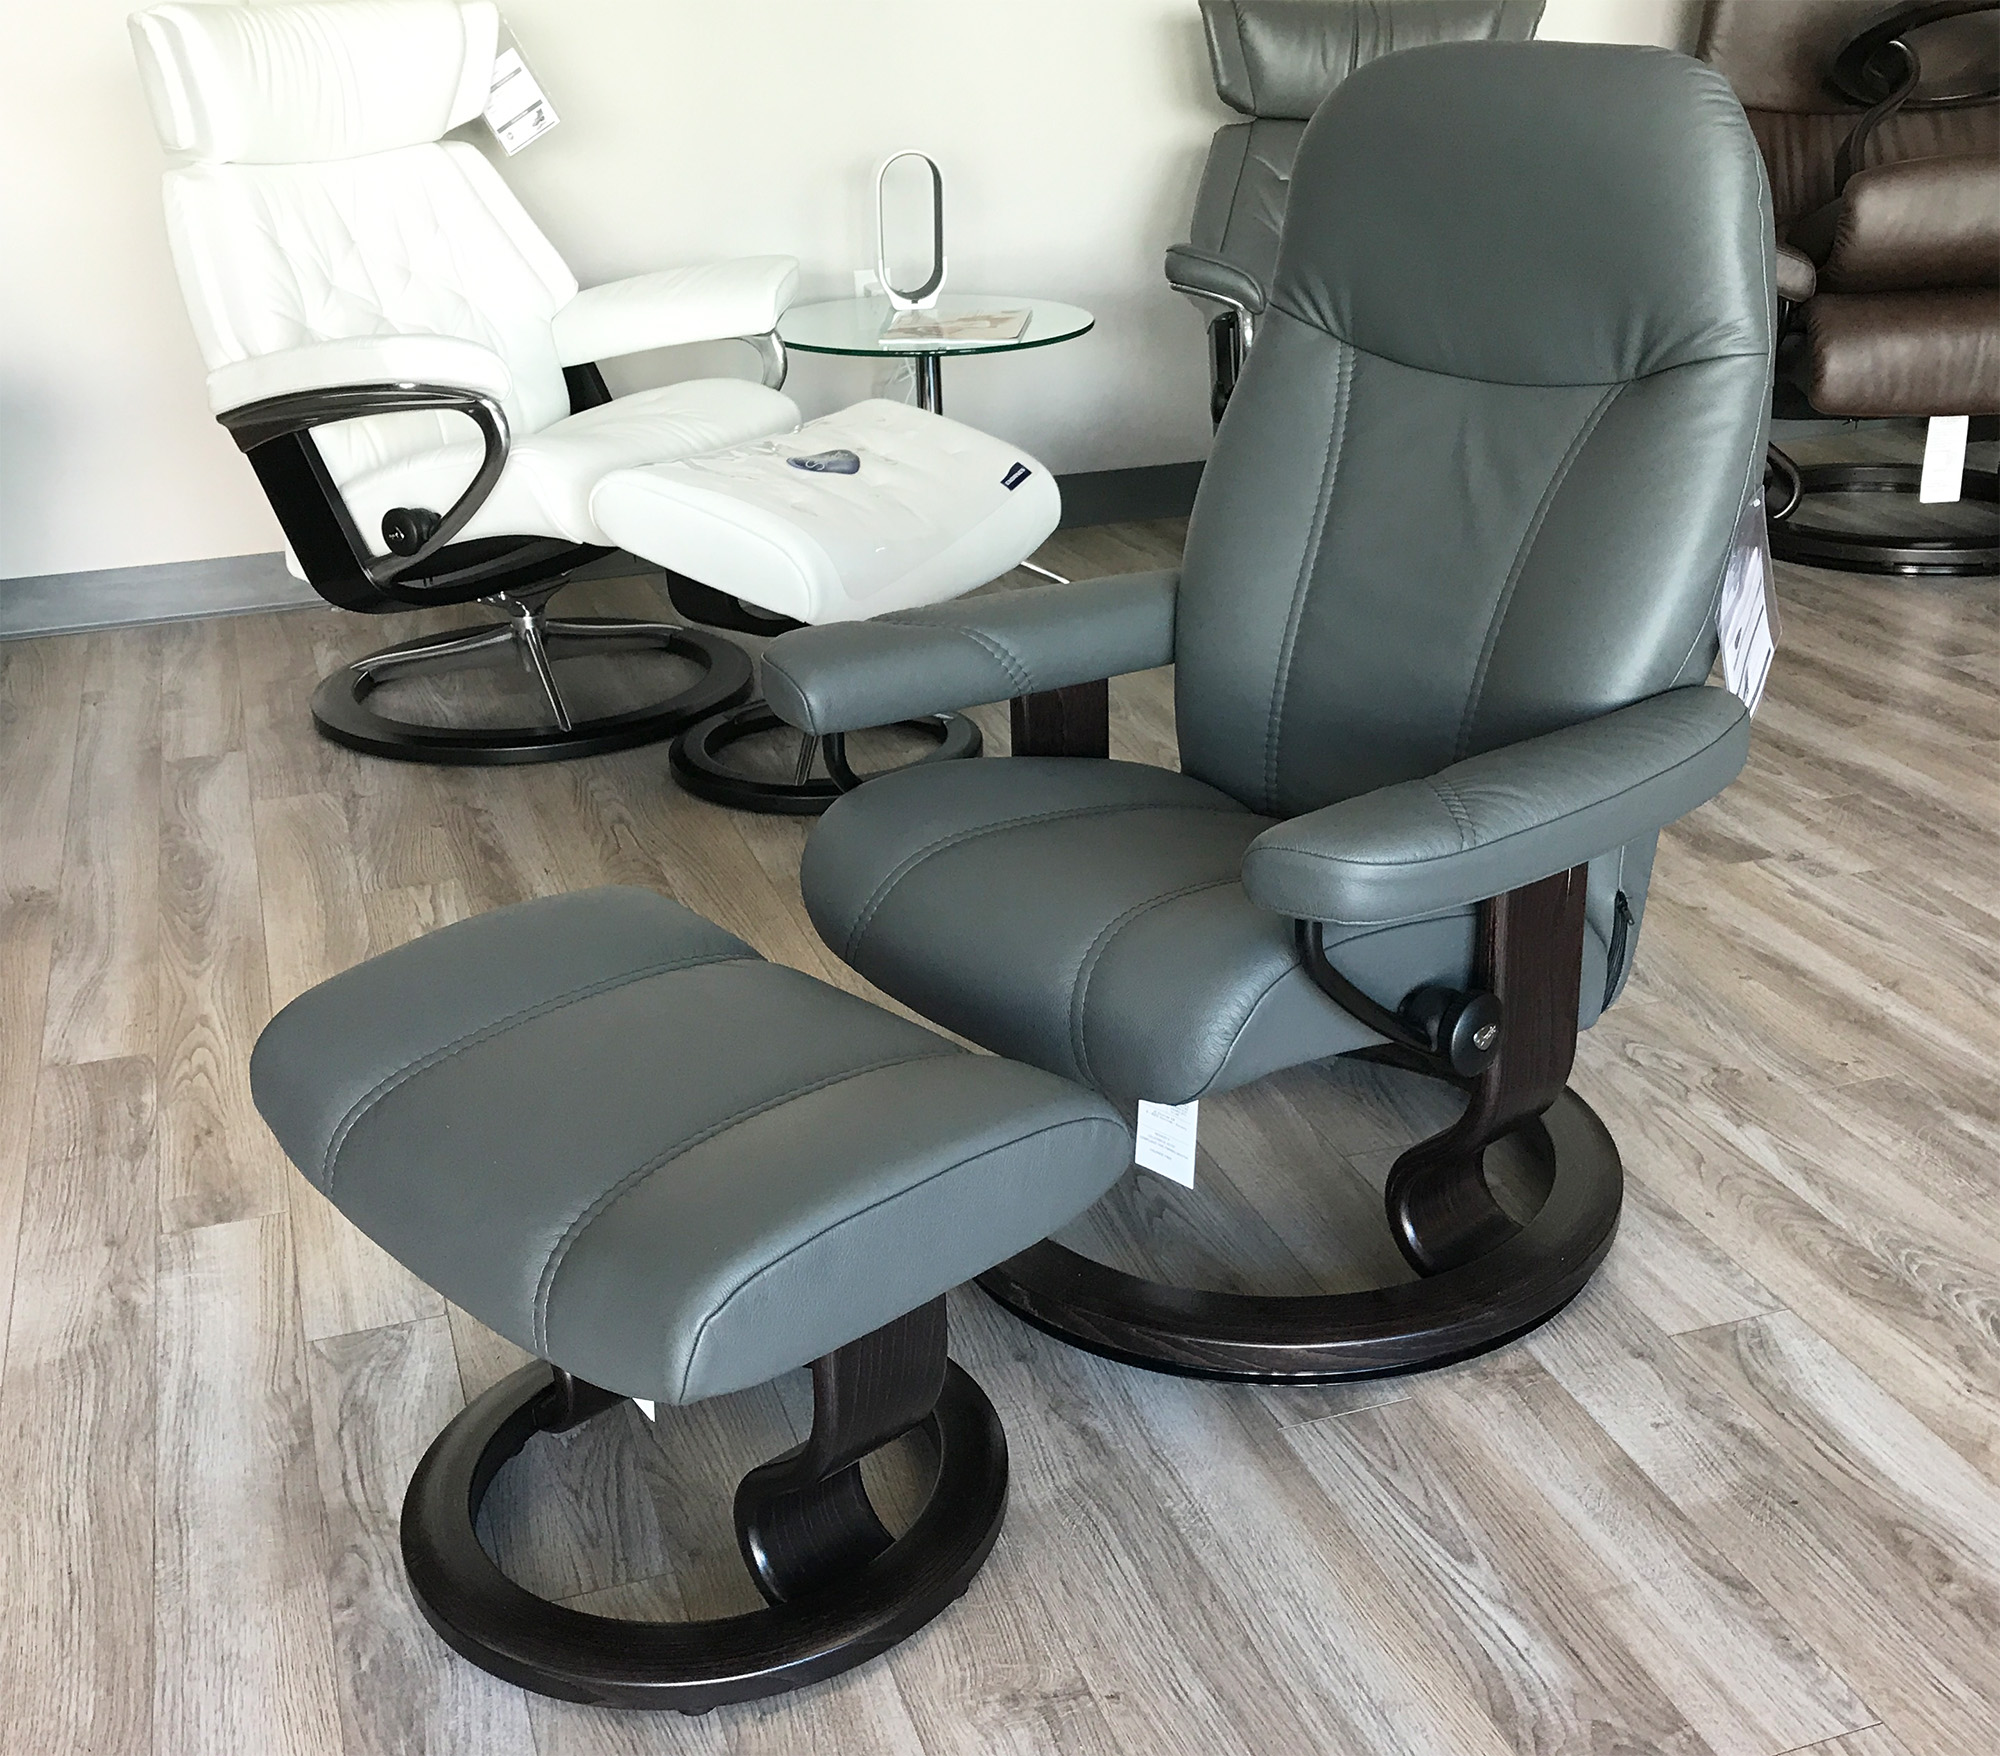 Stressless Consul Recliner Chair and Ottoman Batick Grey Leather